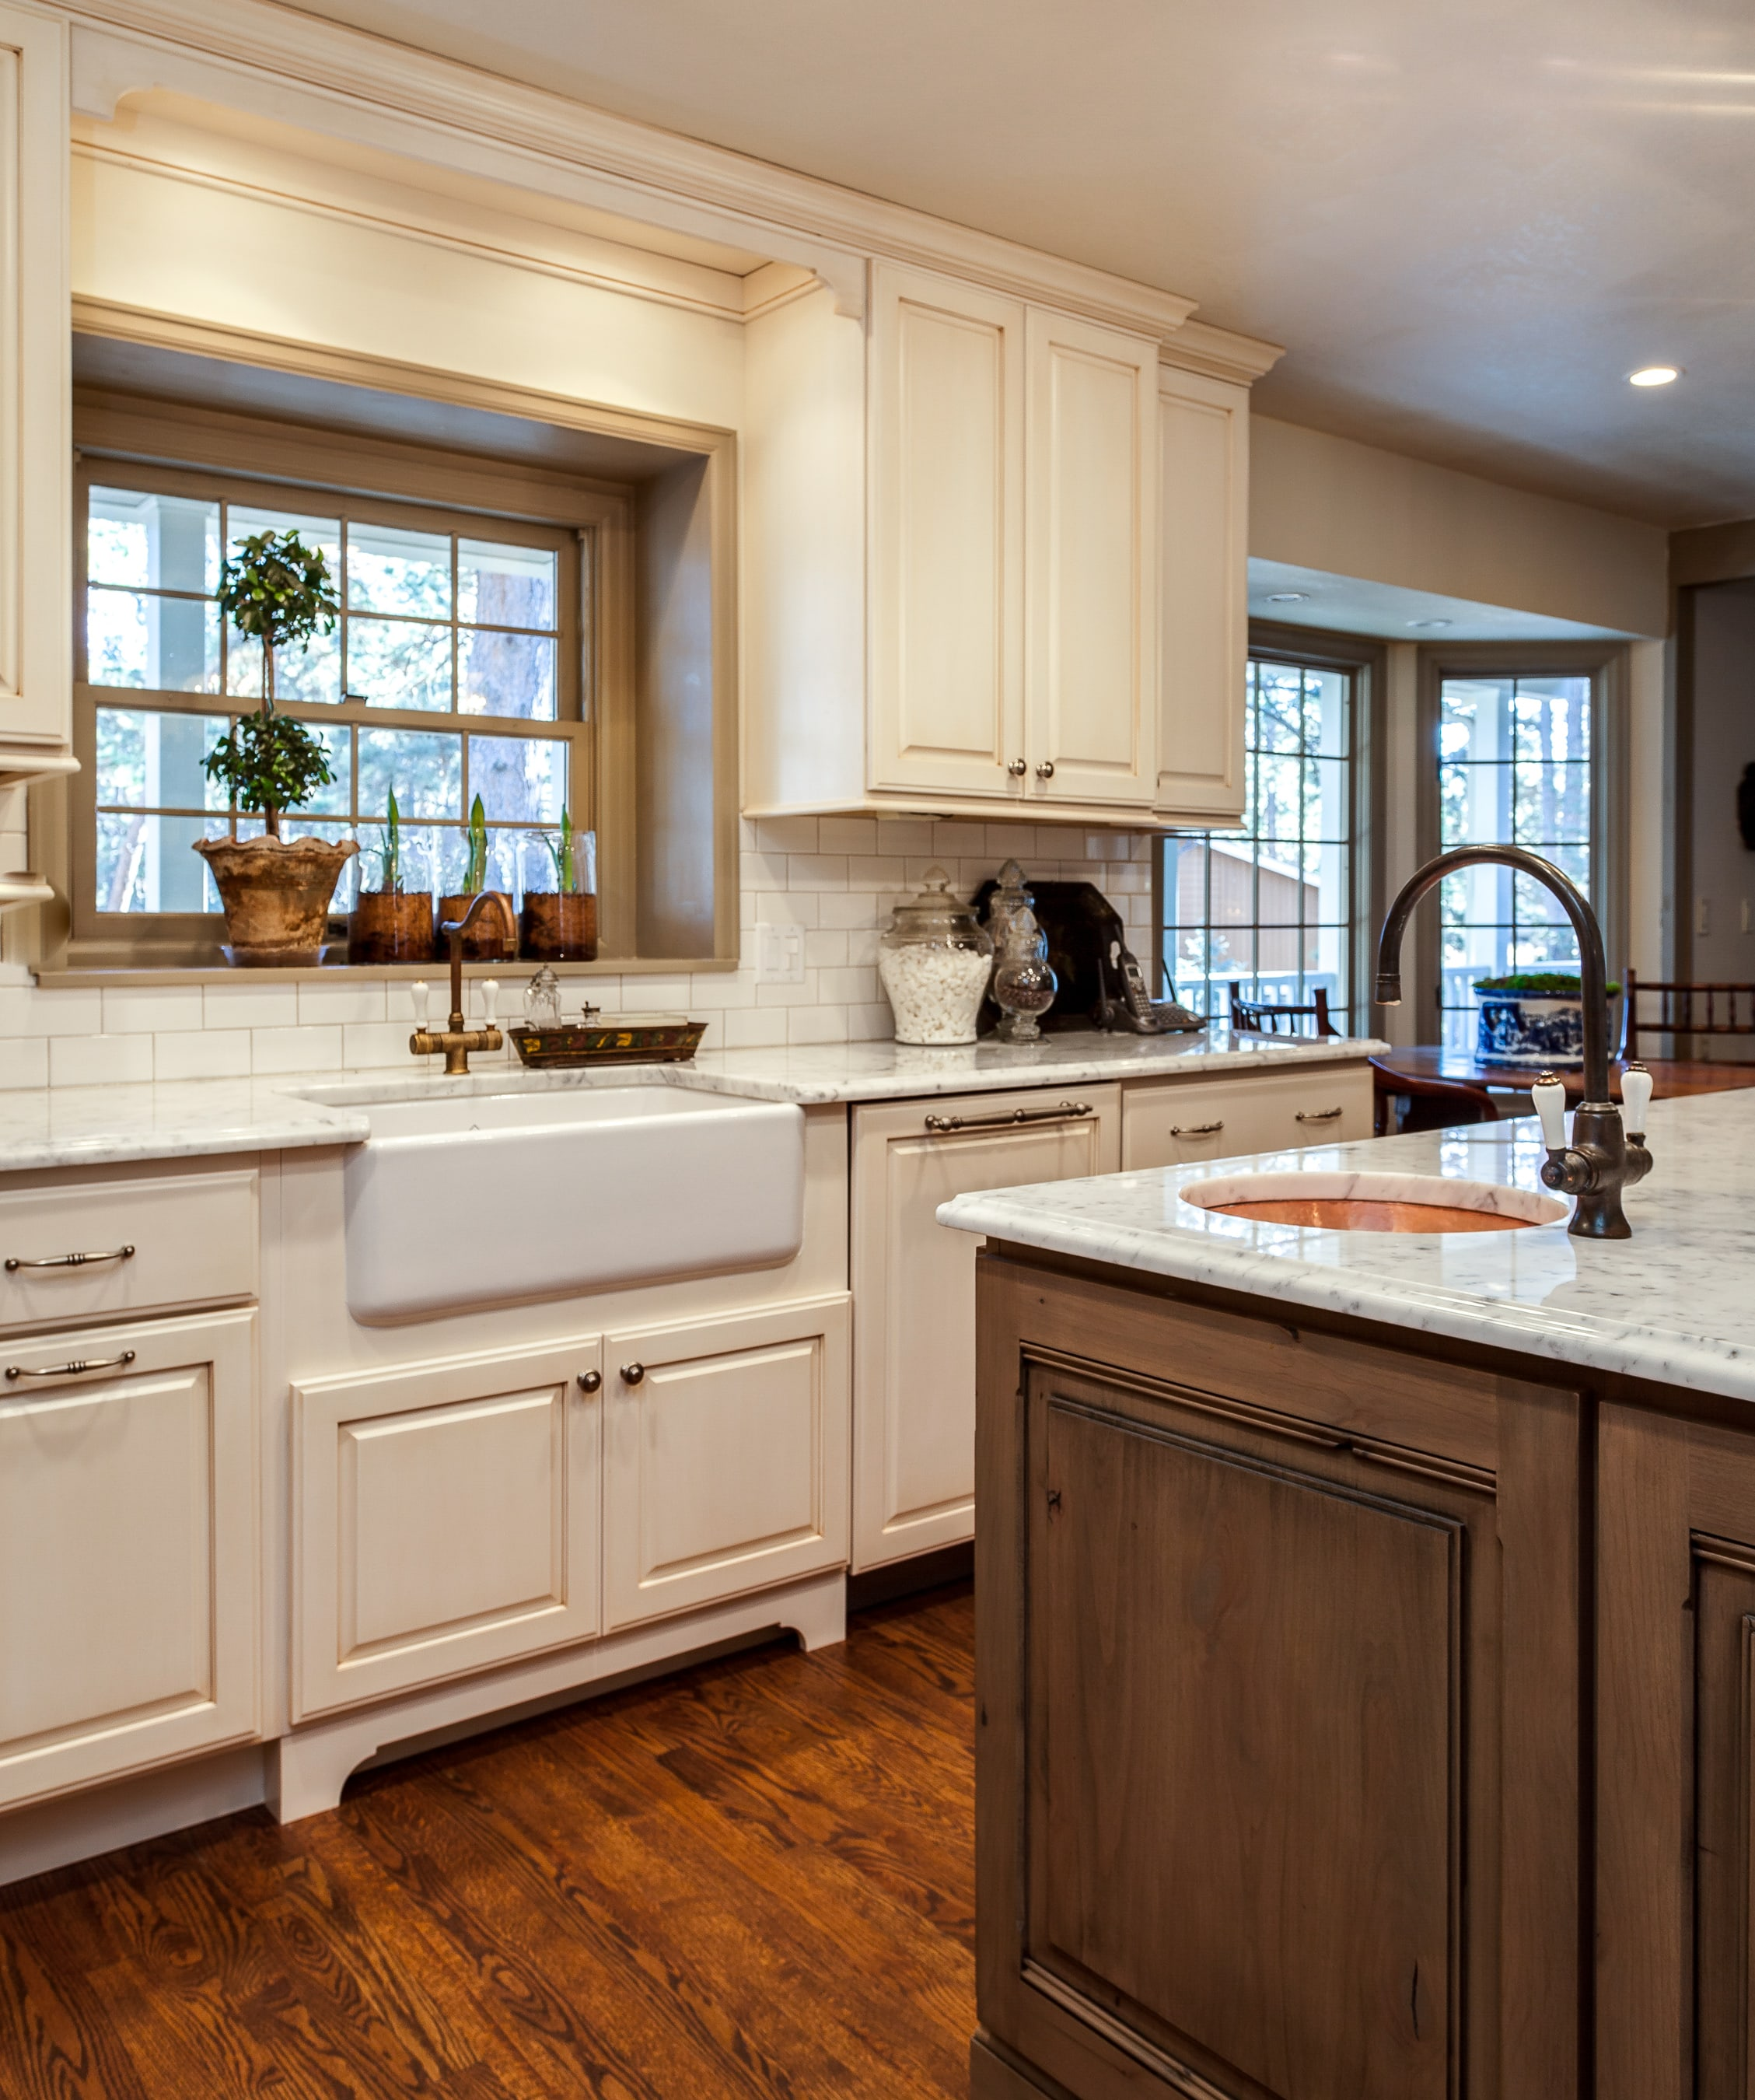 Water Stains Under Your Cabinets